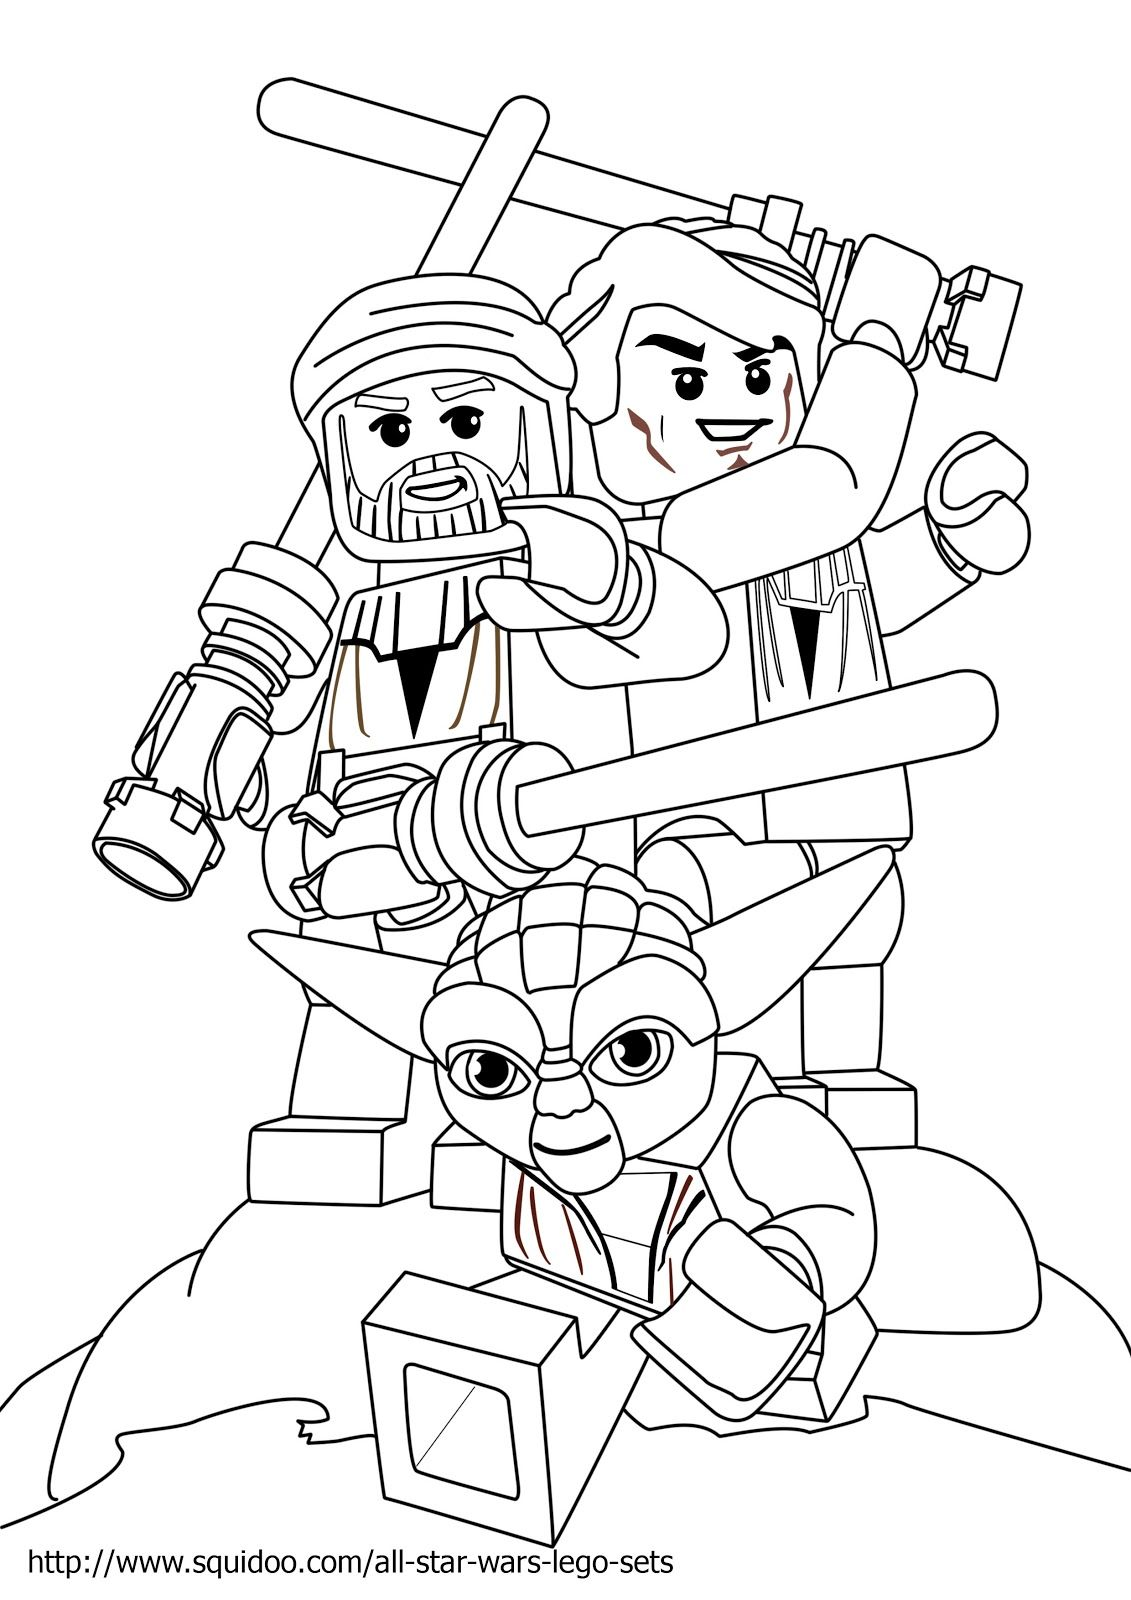 Lego Star Wars Yoda Coloring Pages Original size 1131 x 1600